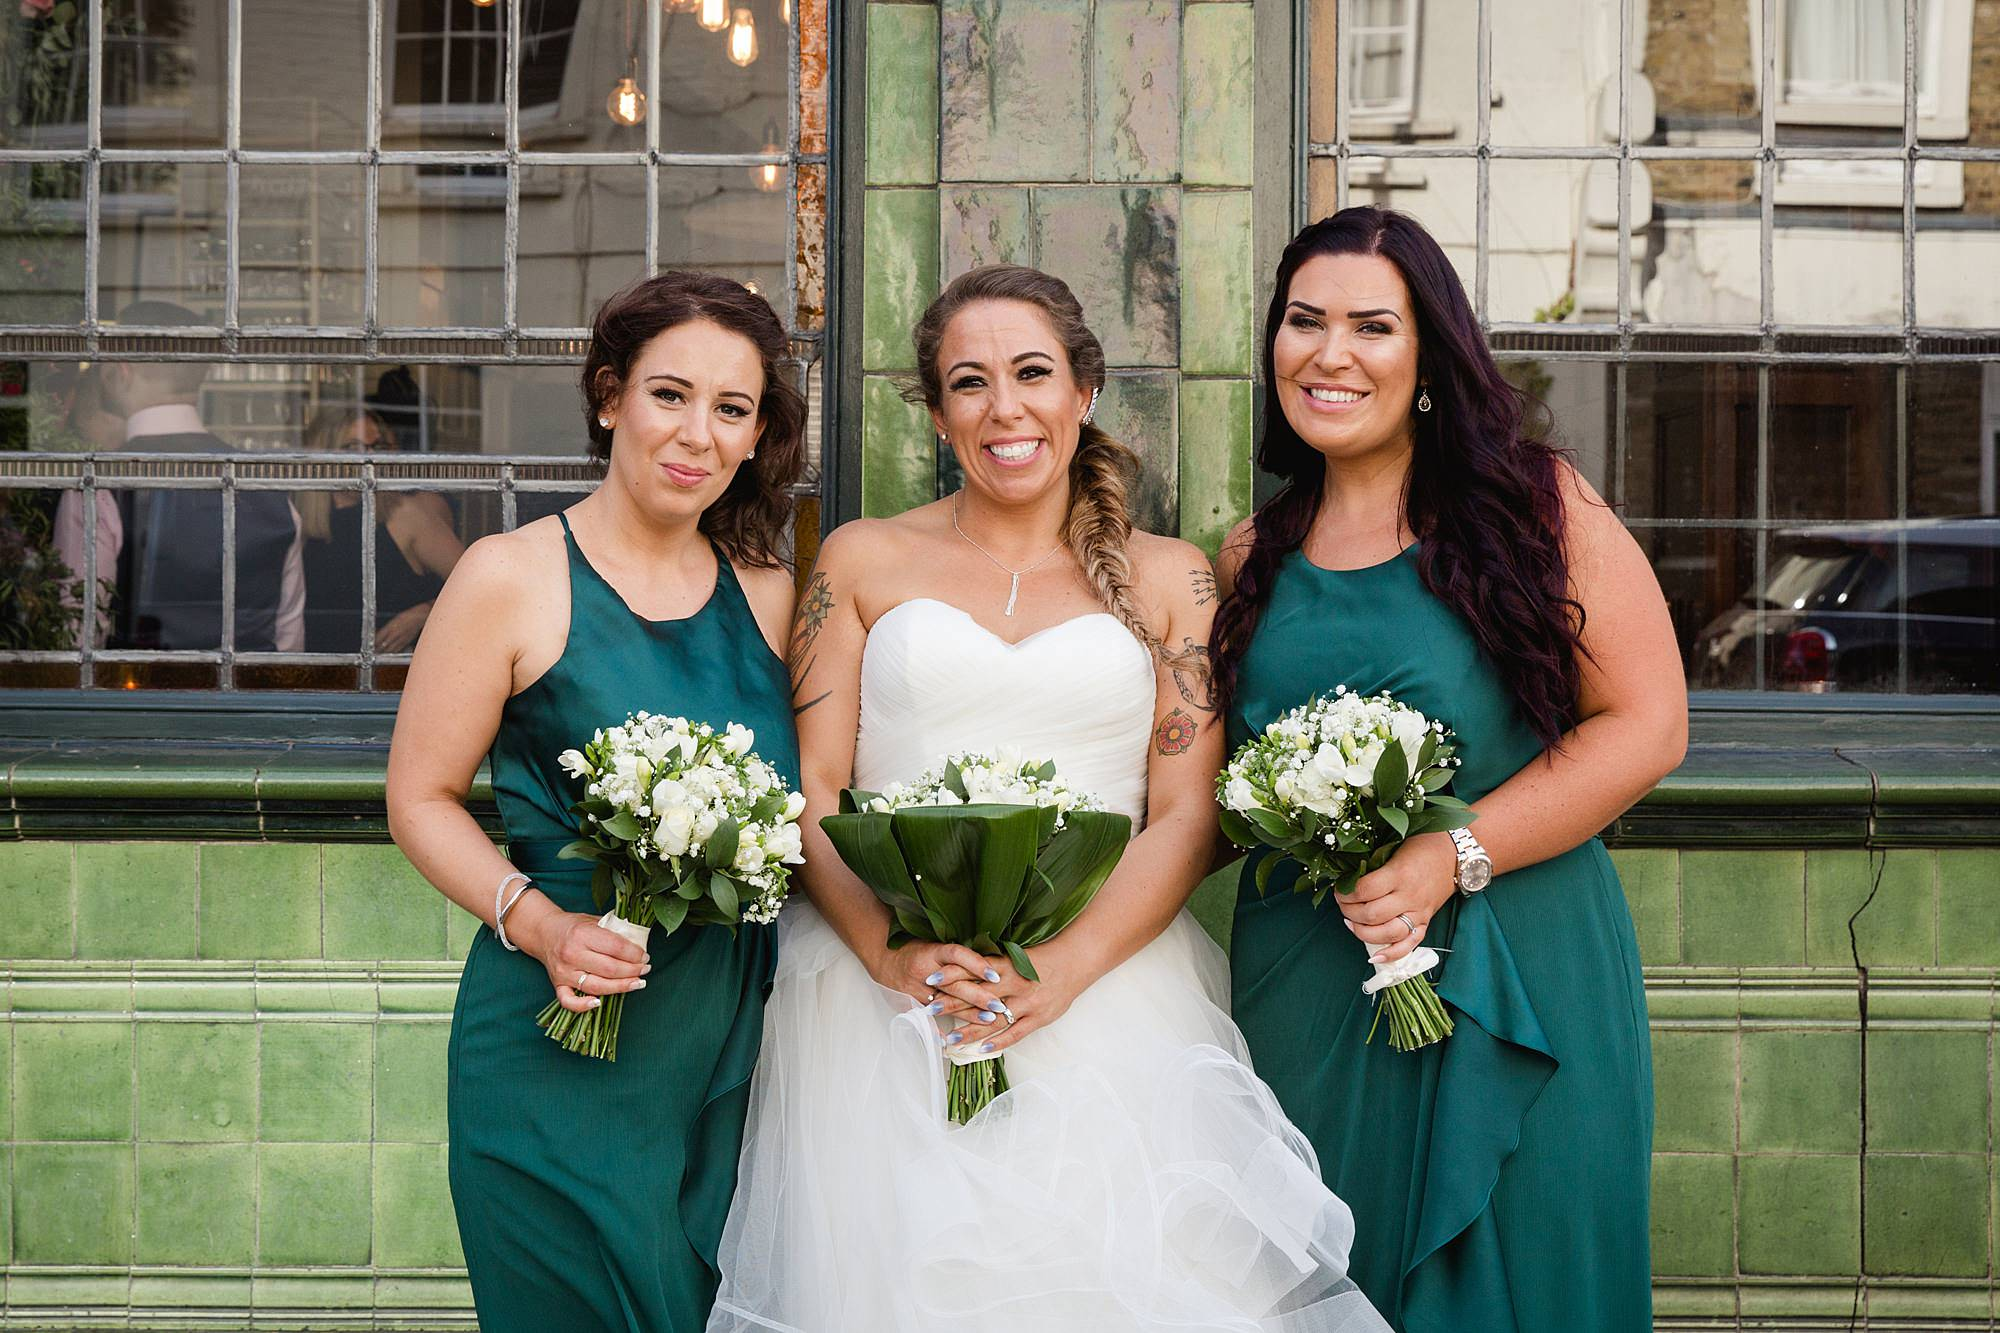 Prince albert camden wedding bride and bridesmaids